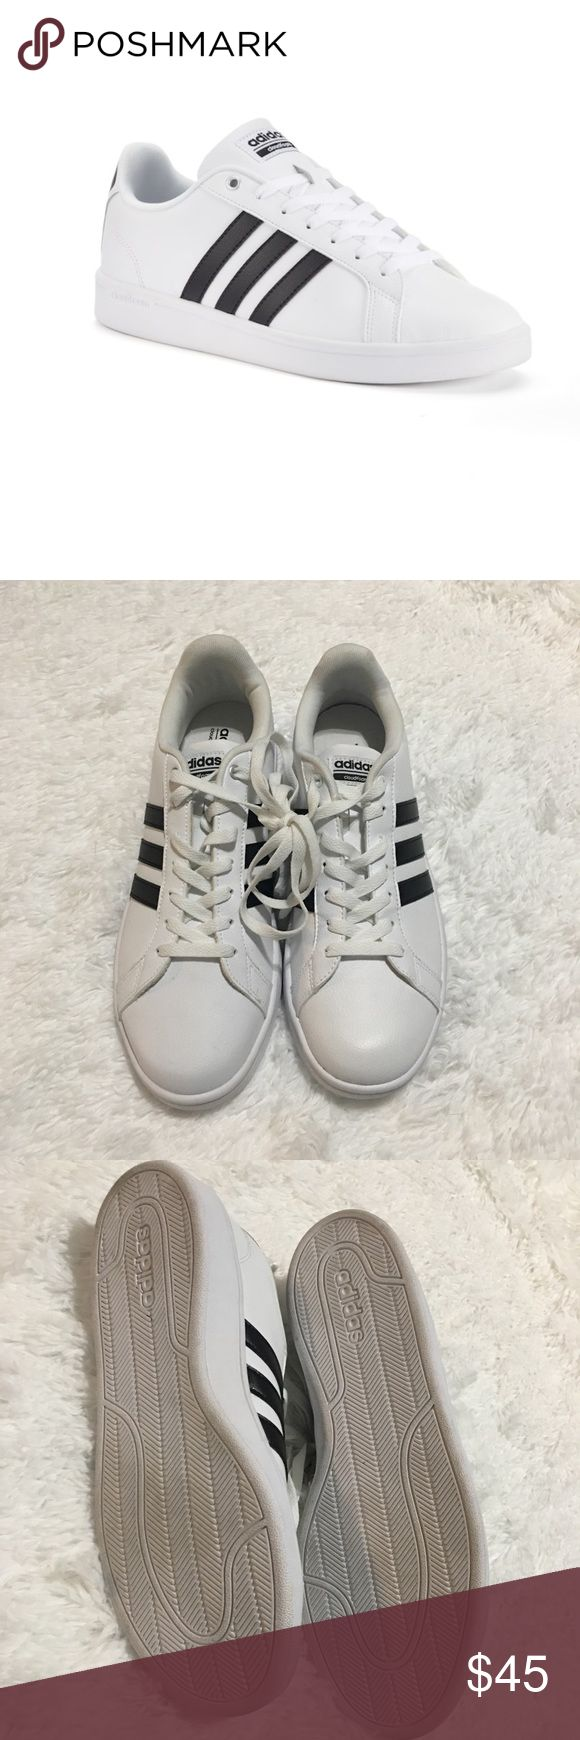 Men's ADIDAS Sneakers This shoe is in a great condition. I would love to say that this shoe is practically new since it's never been worn just tried on. There are some smudges / blemishes that can easily be clean please see the photos.  Men's ADIDAS Neo Cloudfoam adidas Shoes Sneakers